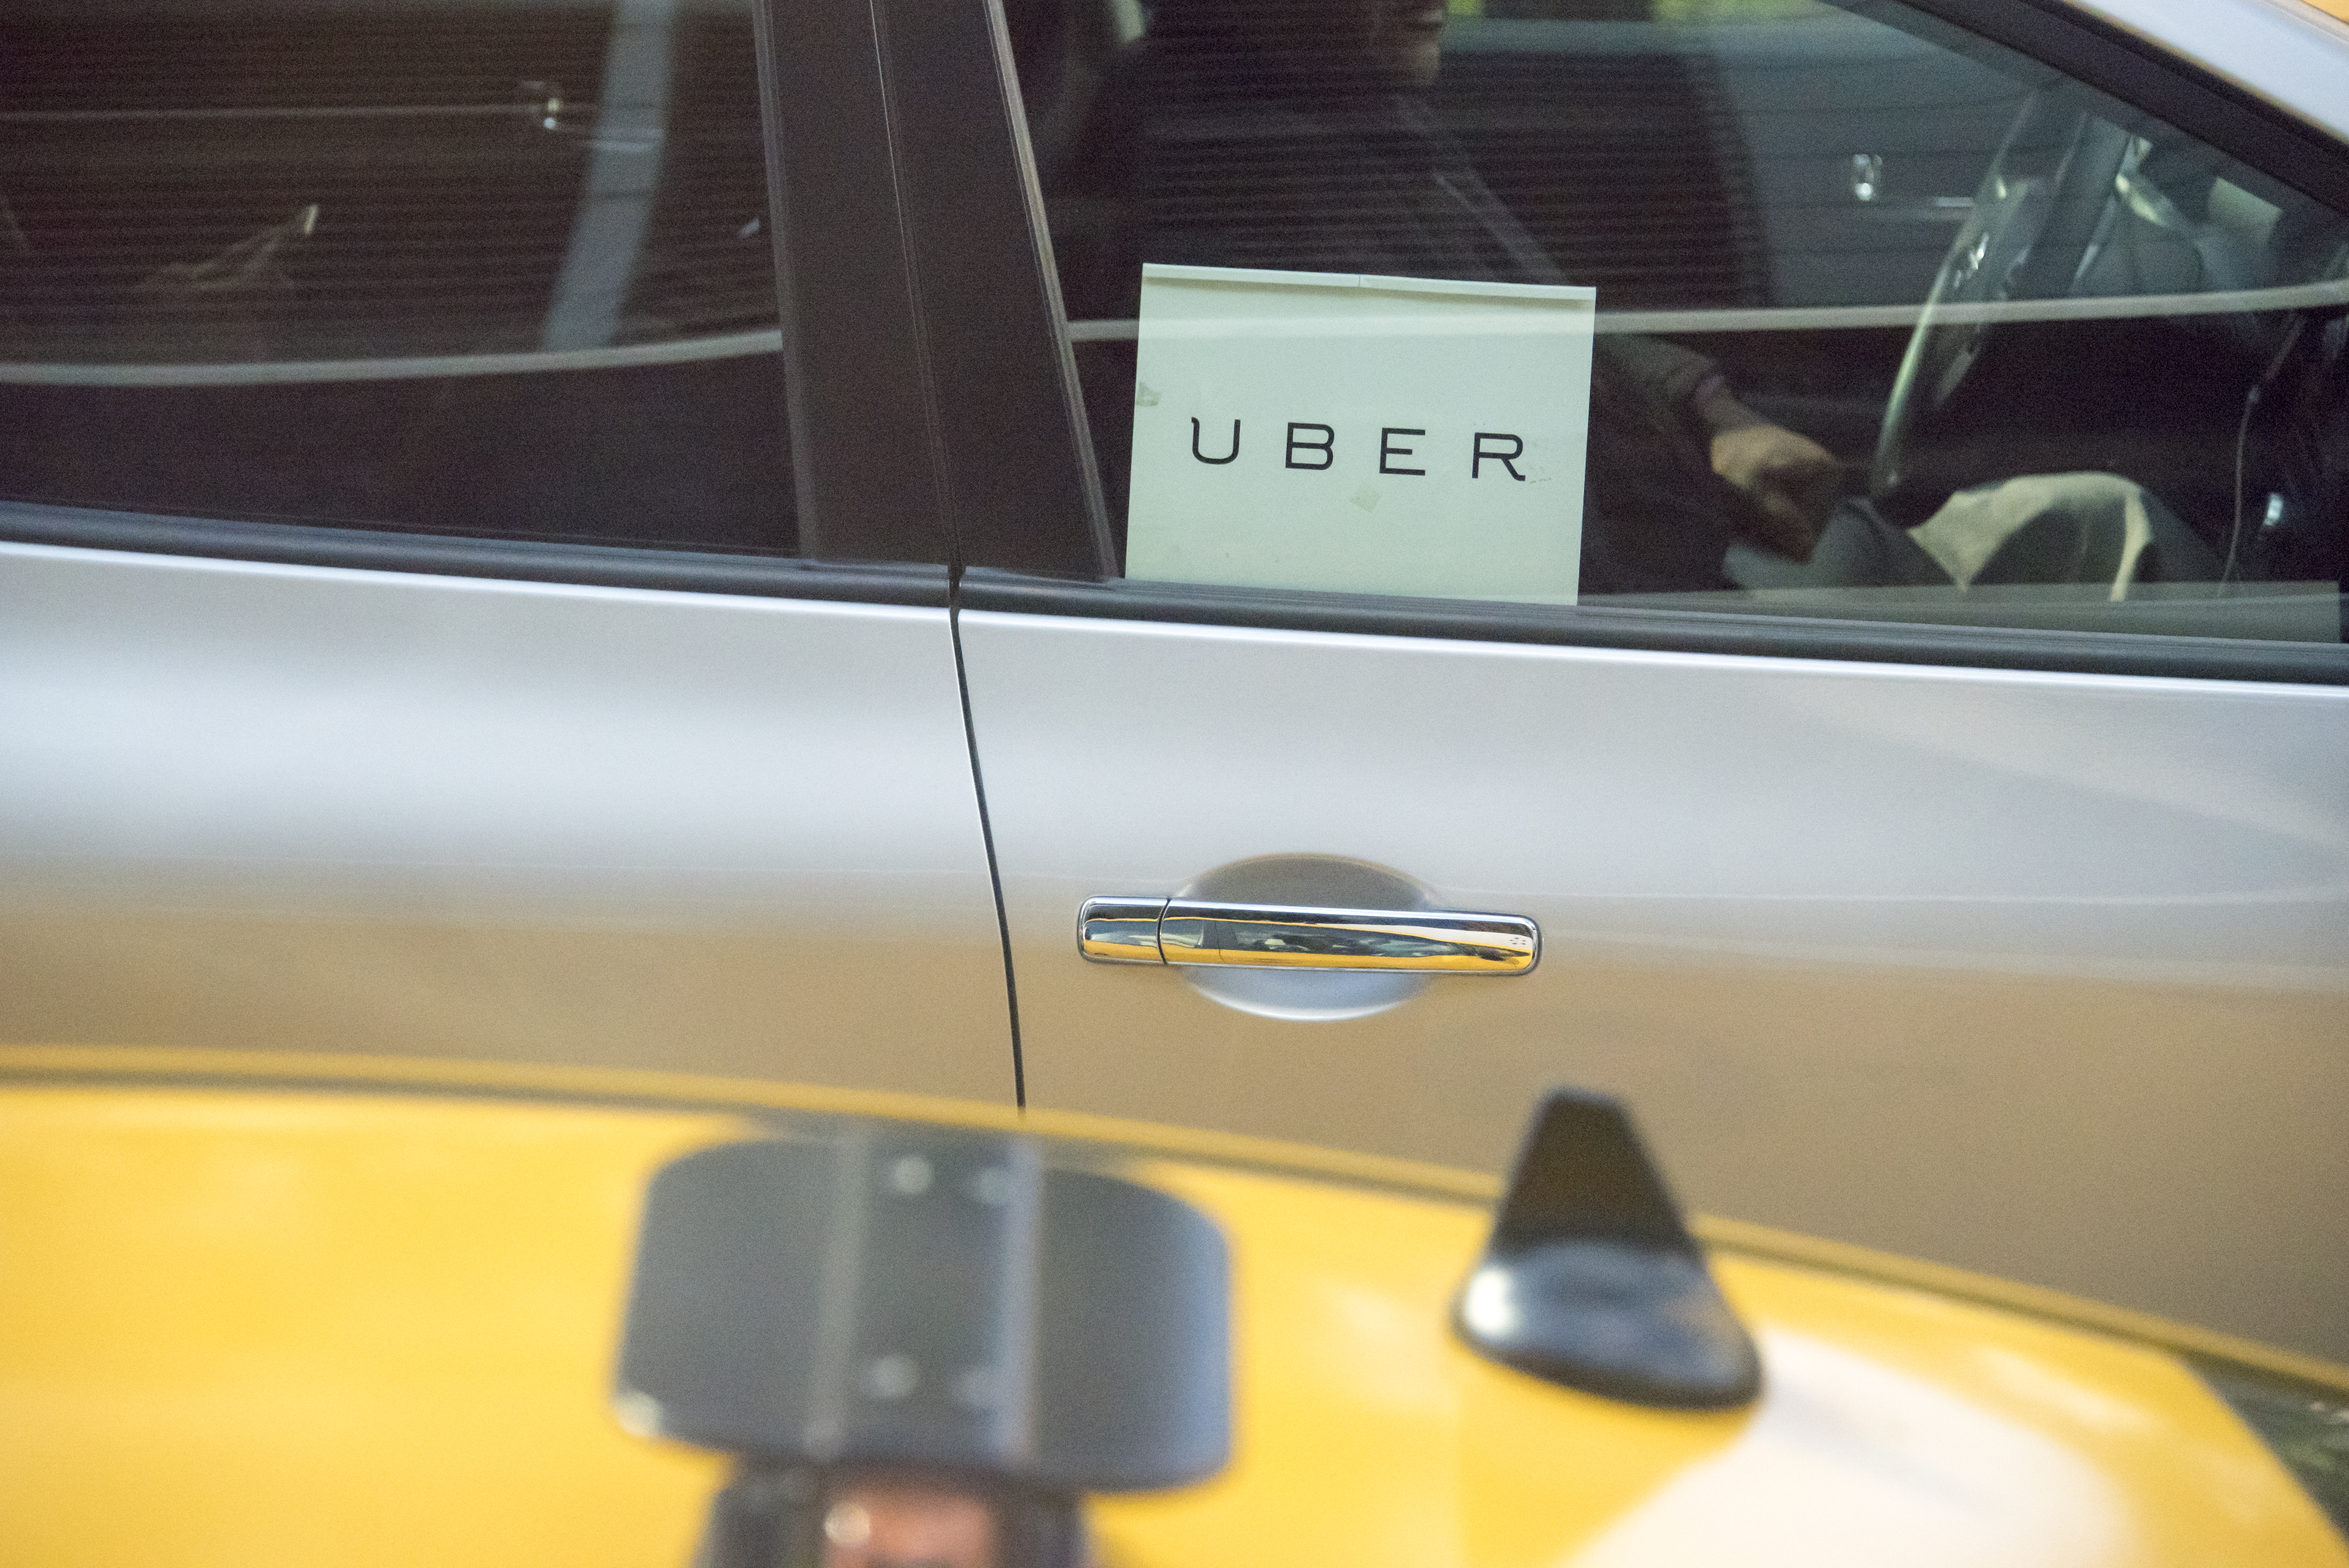 A car with an Uber sign in the window beside a yellow taxi